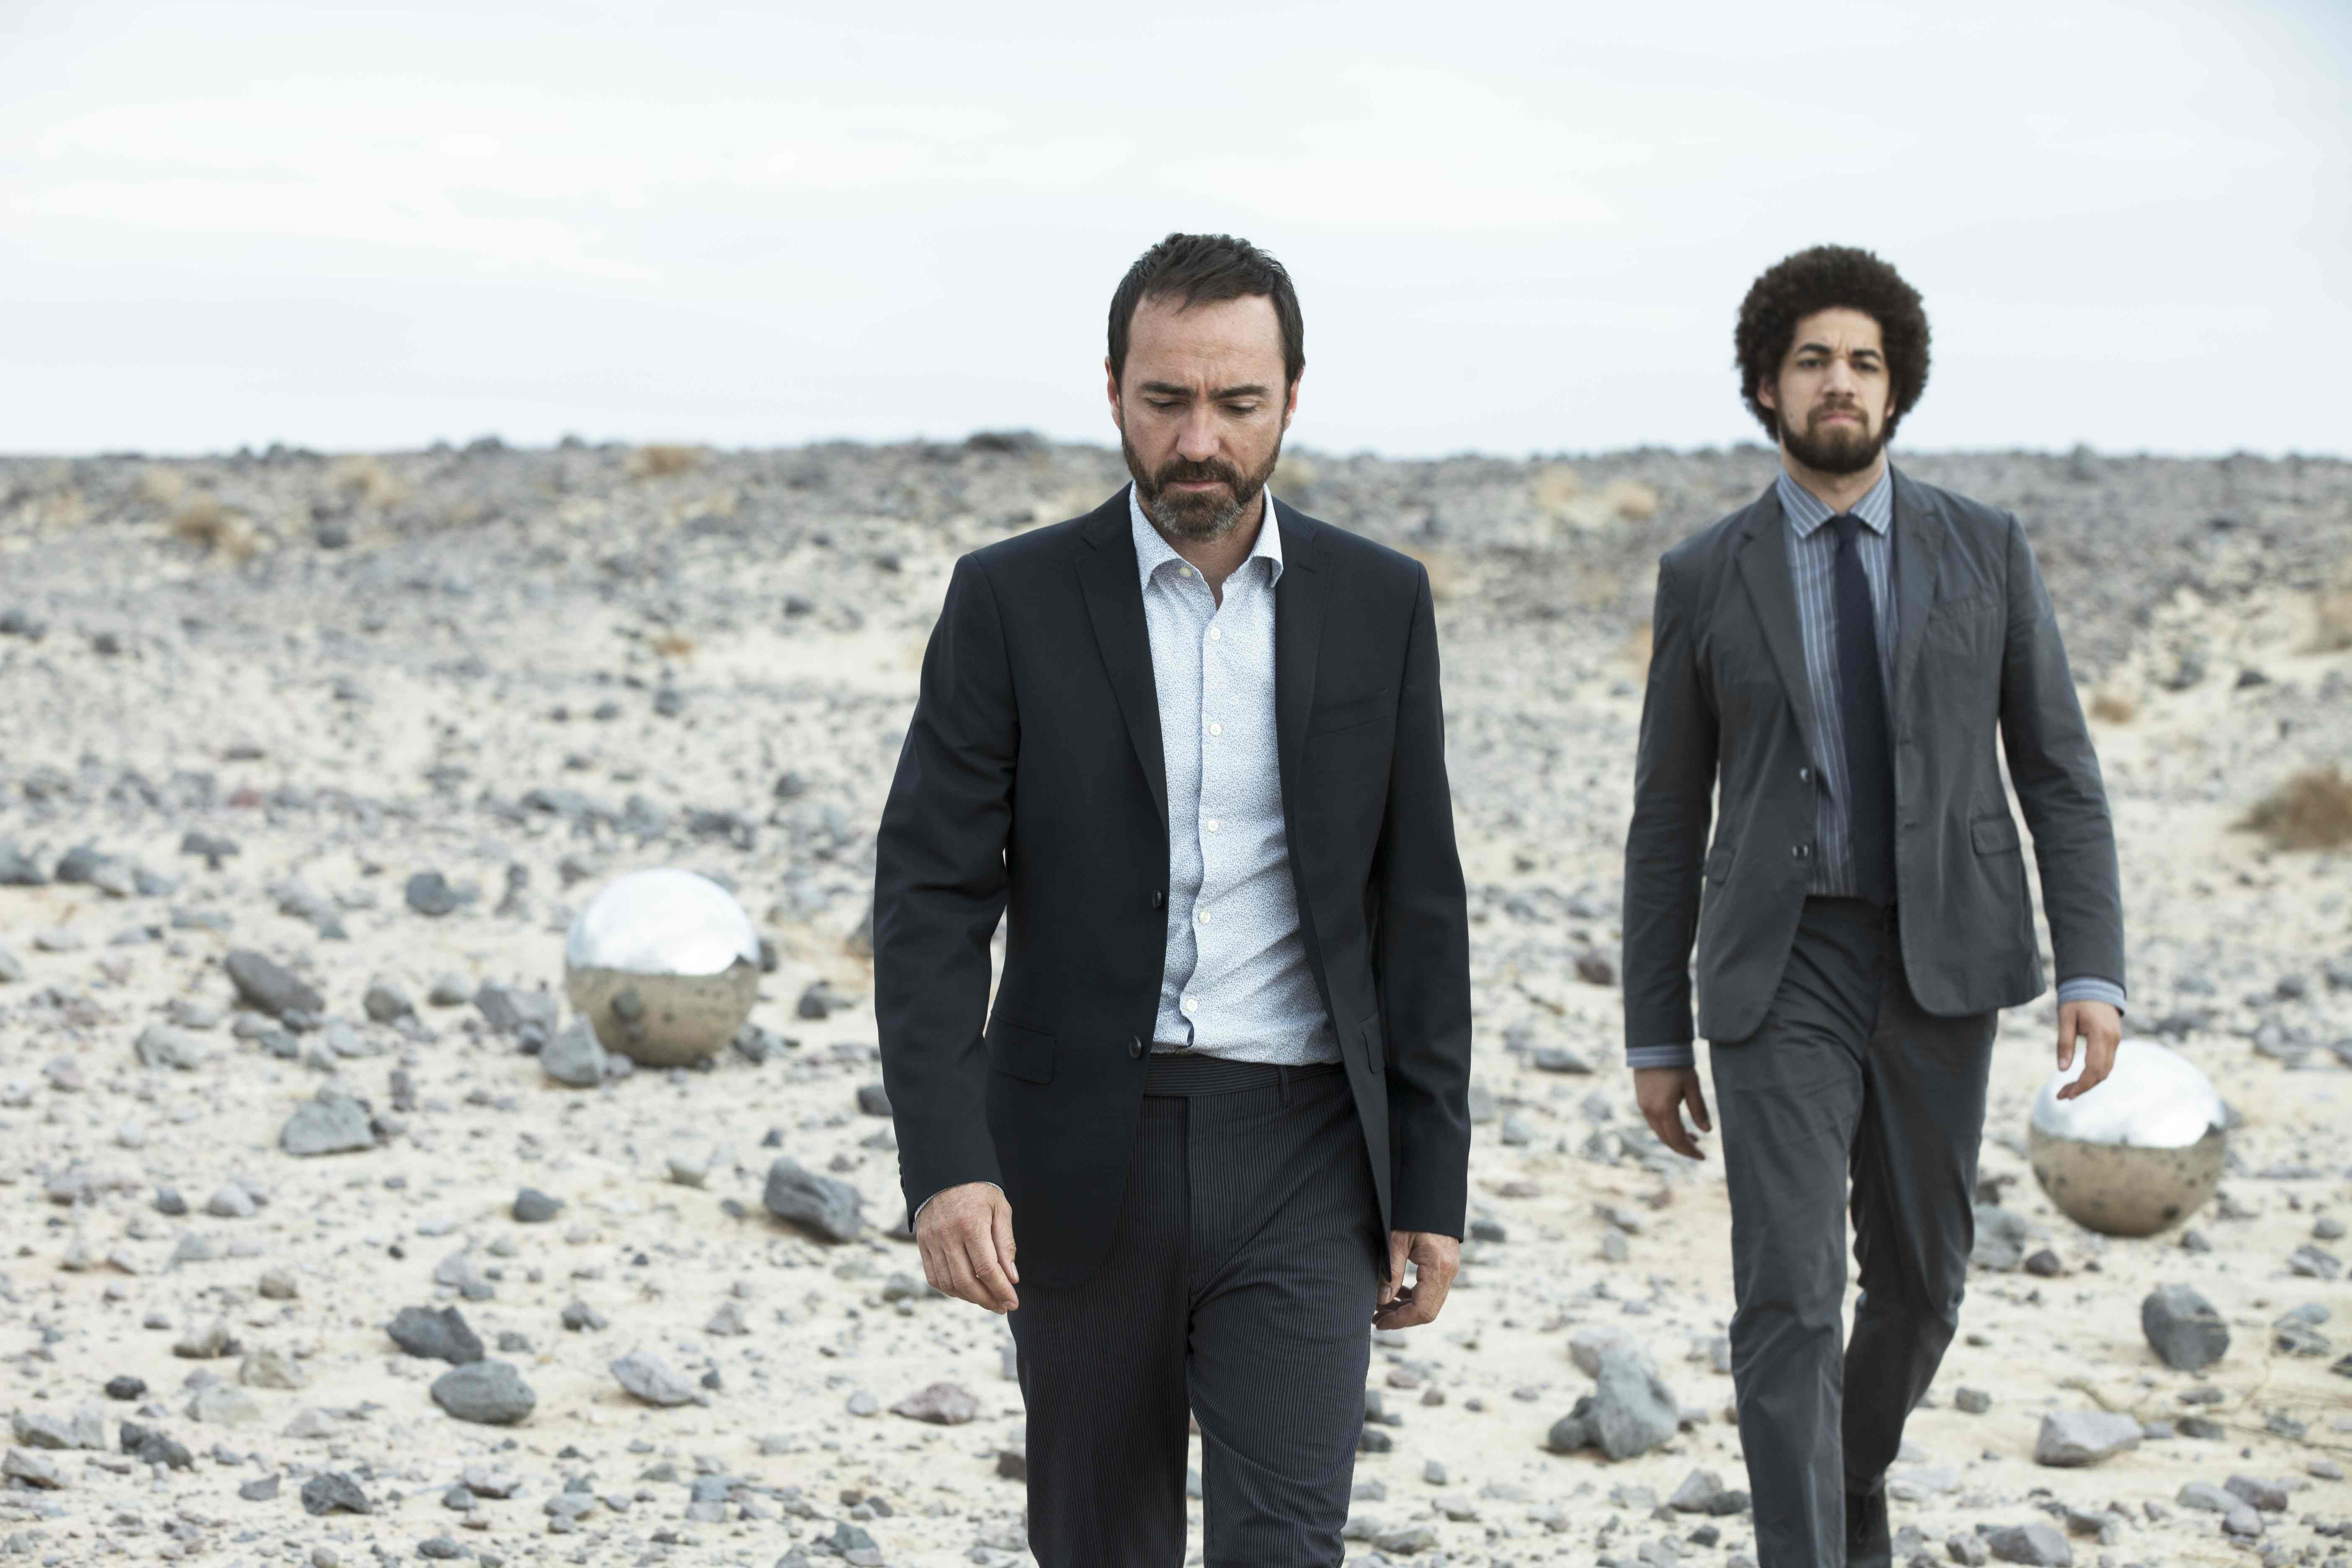 Broken Bells' album, After the Disco, is out now. (Courtesy of the artist)